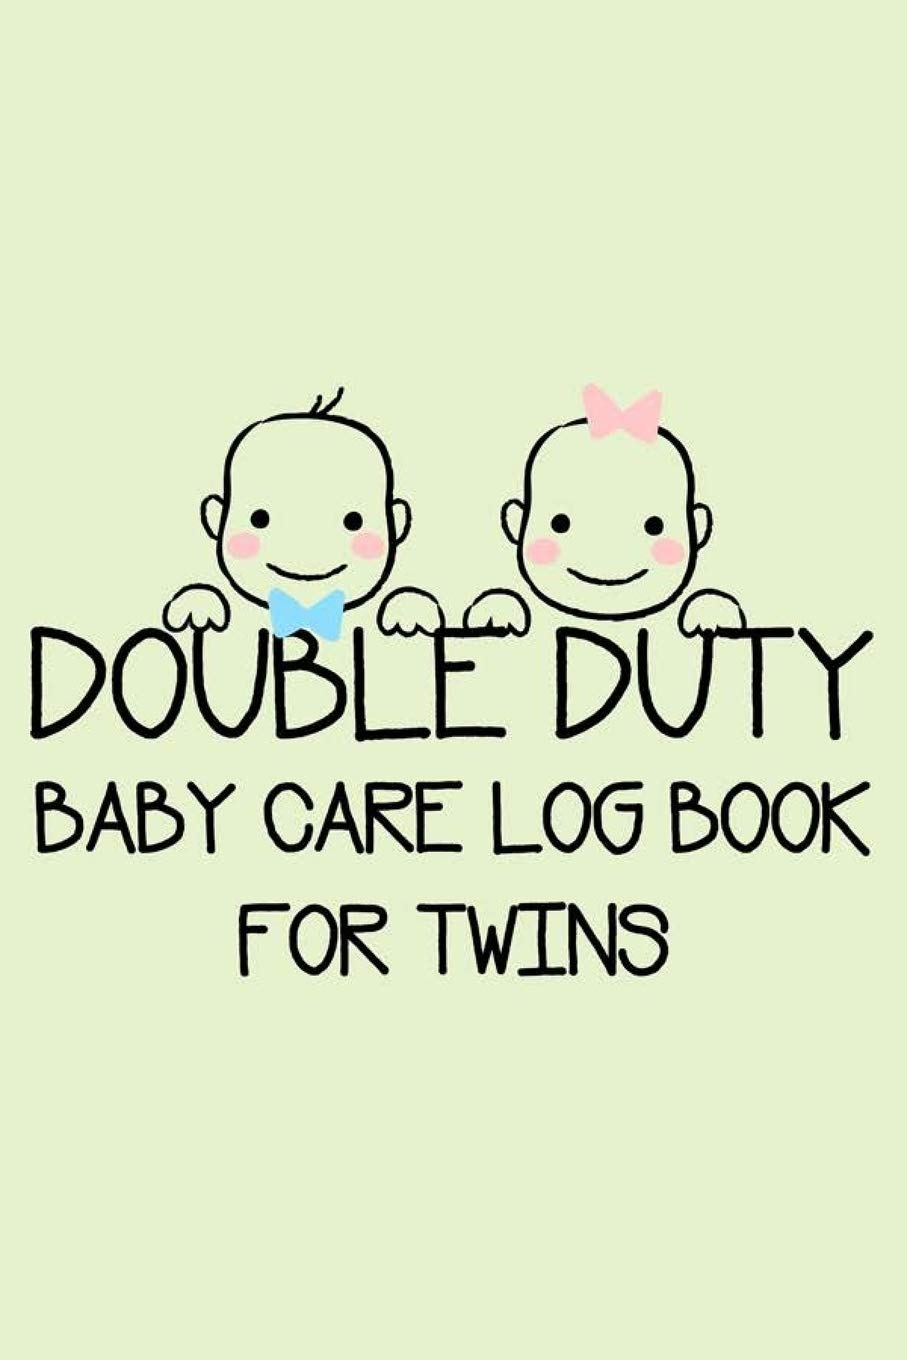 Double Duty Baby Care Logbook For Twins Funny New Mom And Dad Gifts Feeding Activities Tracker Eat Sleep Poop Journal Newborn Baby S Log Book Welcome New Baby Notebook For Parents Publishing